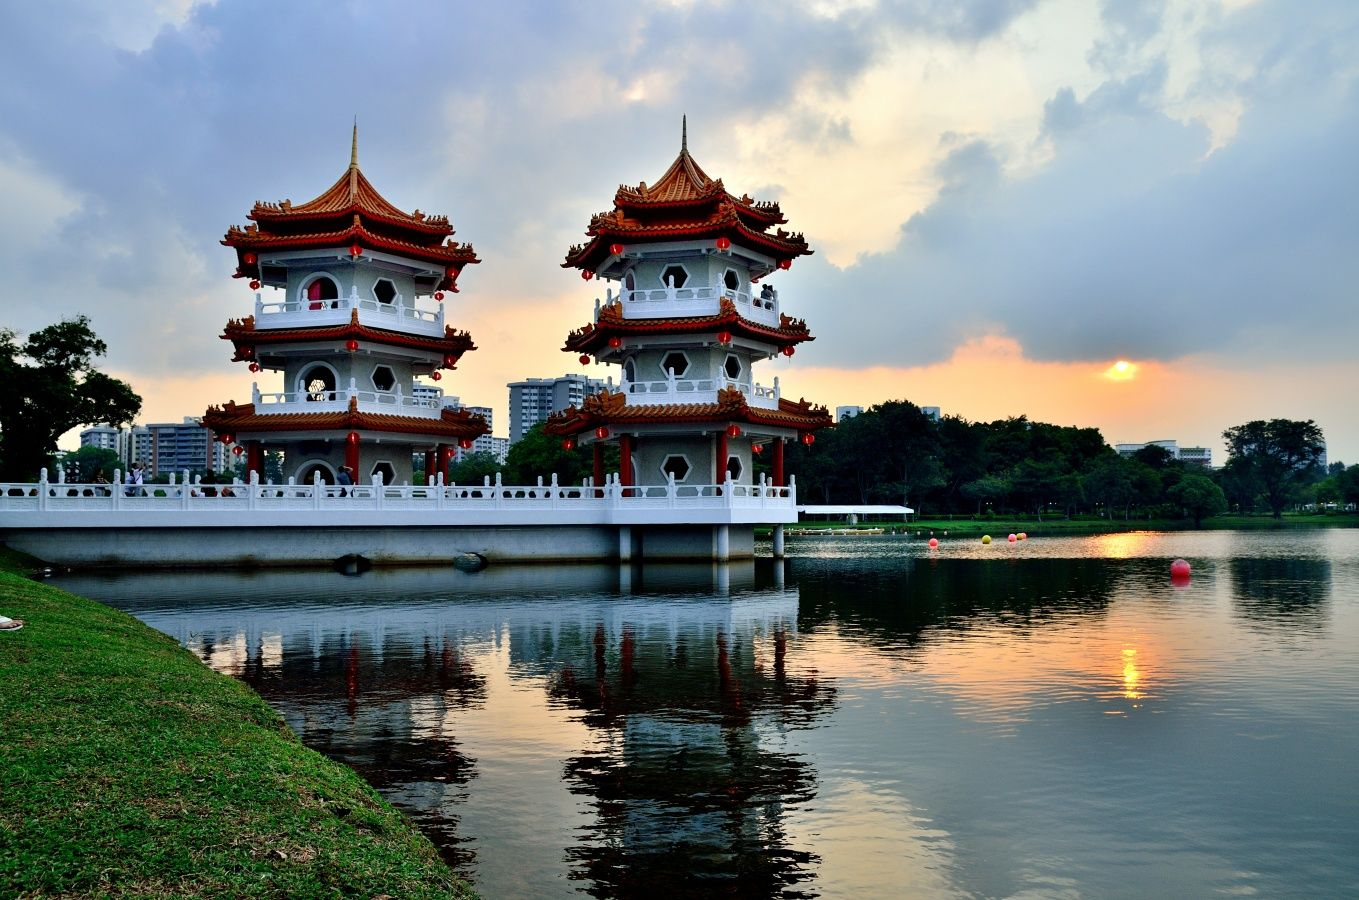 Fabulous Pagodas in the Chinese Garden